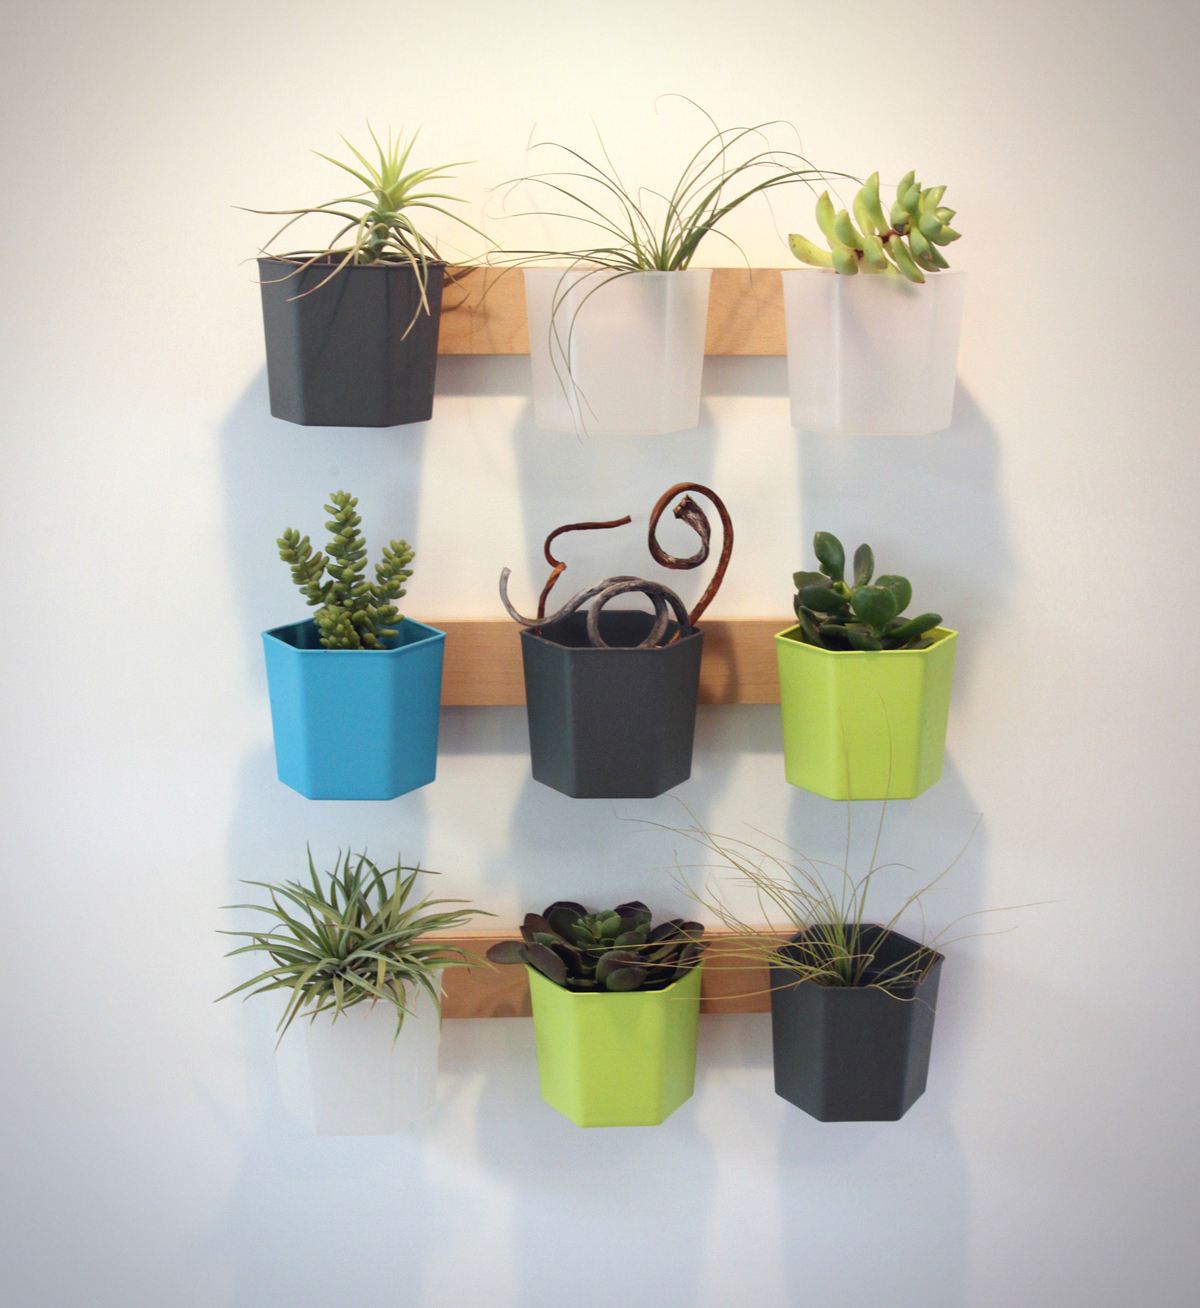 HYVE wall_planks planter